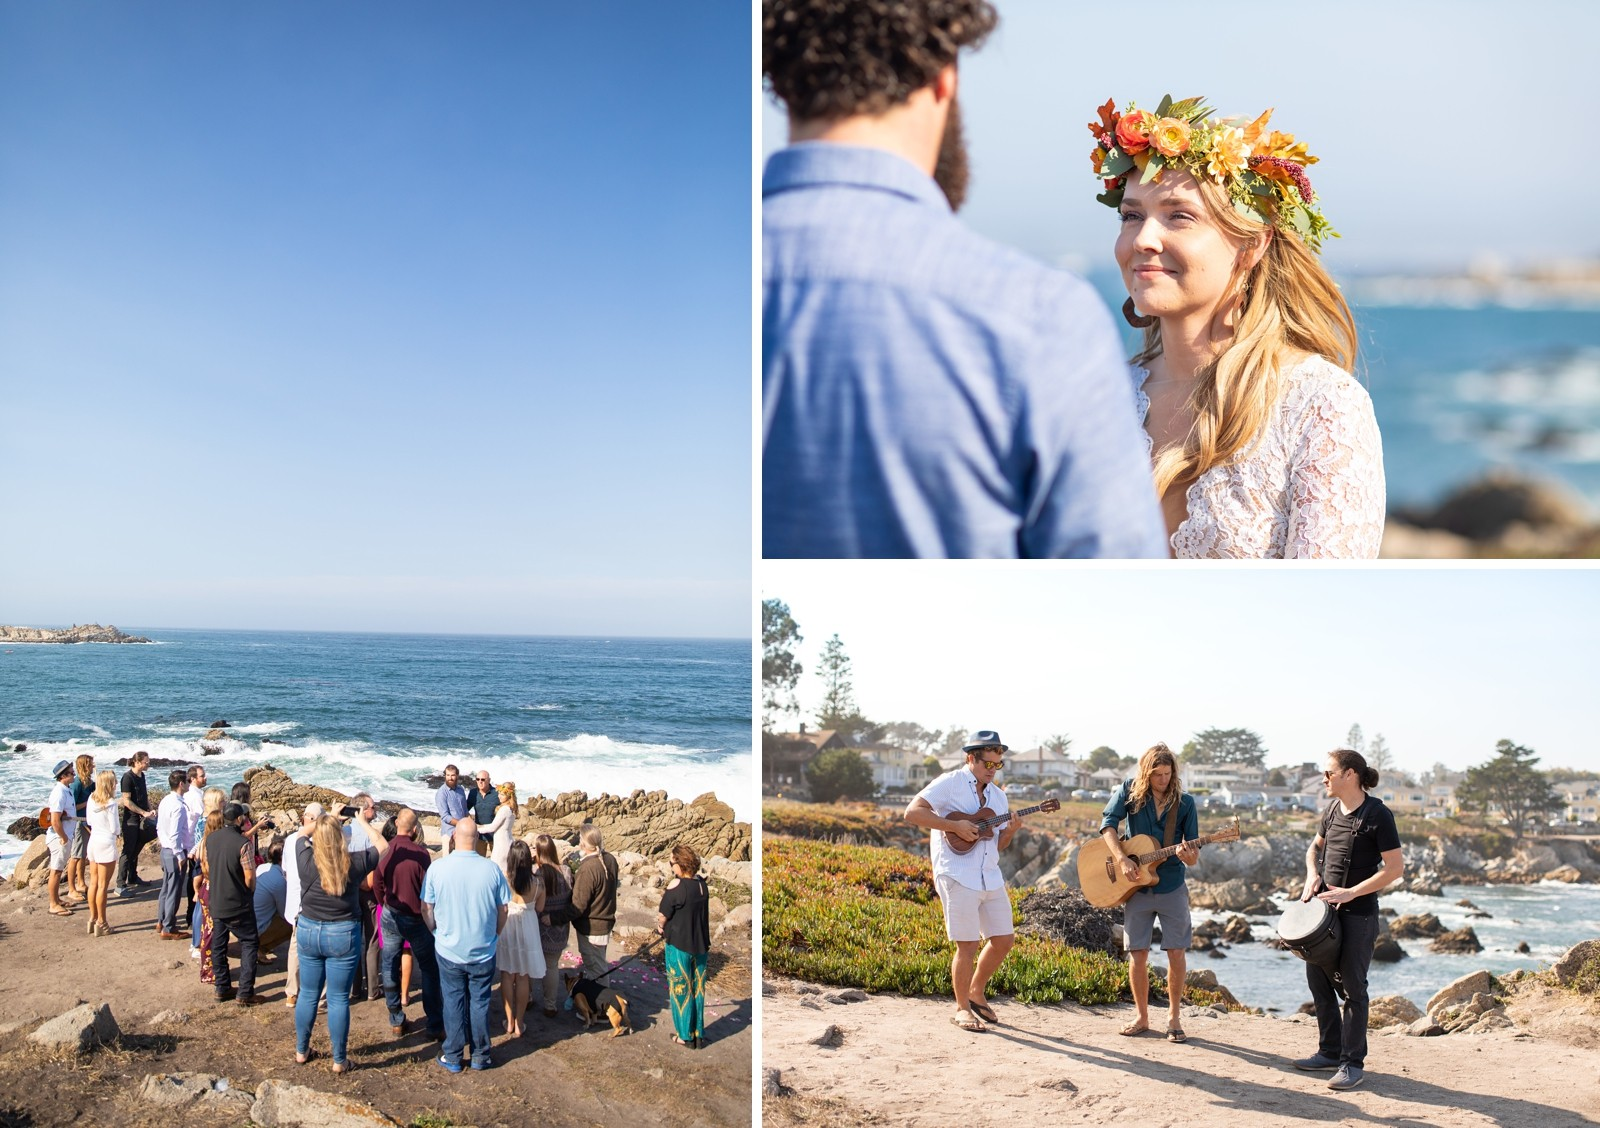 Monterey Beach Destination Wedding